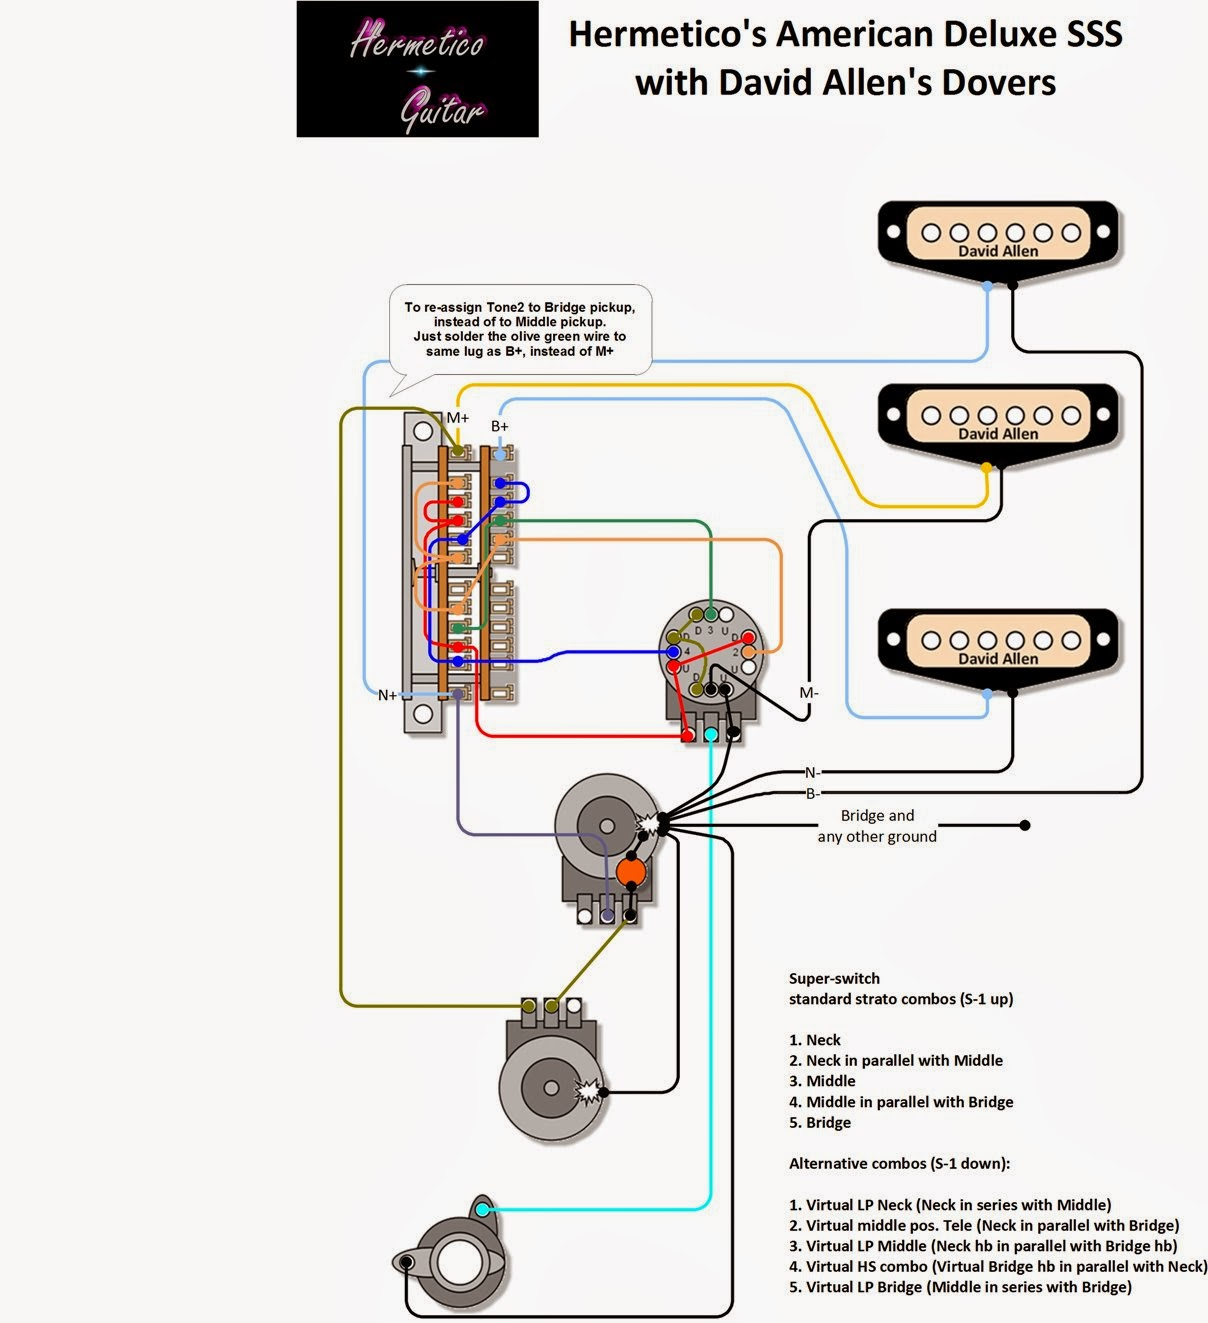 medium resolution of this wiring will give you 100 satisfaction if you use mentioned da dovers even that other pickups of similar quality level if